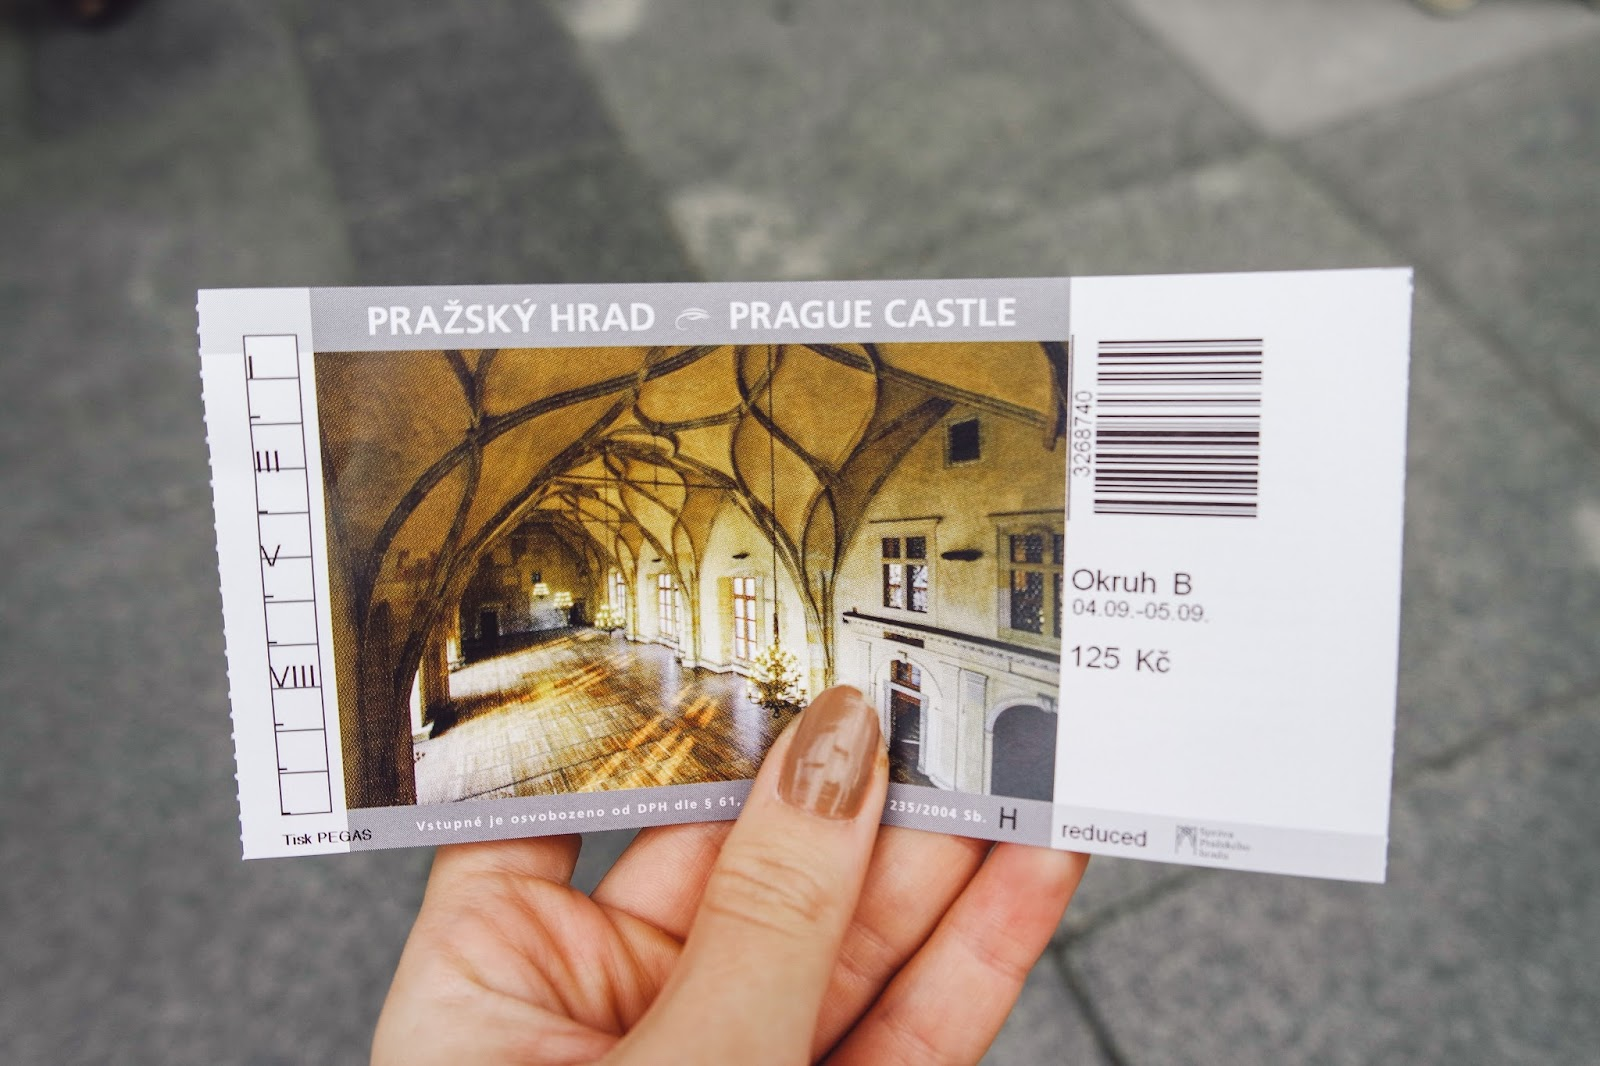 prague castle ticket